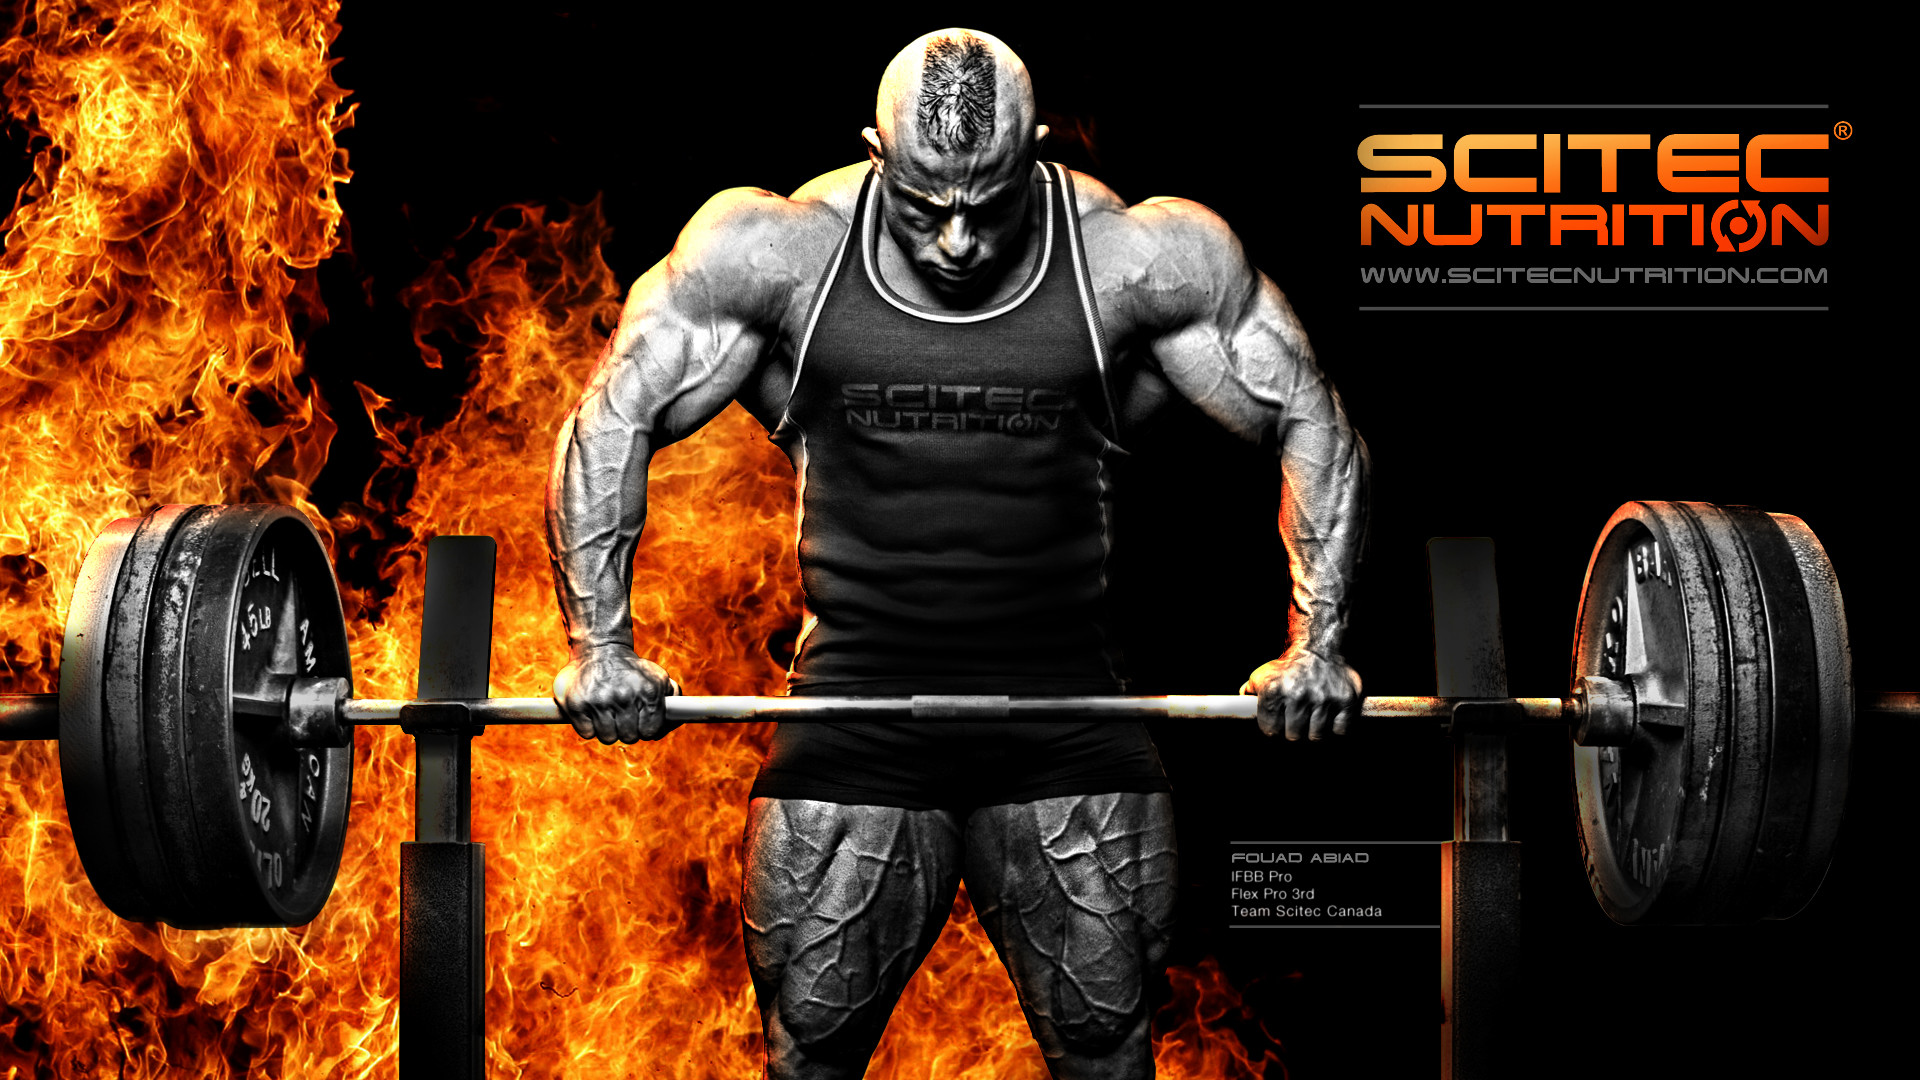 Scitec Nutrition Wallpaper | Fouad Abiad | Fitness & Bodybuilding  Sportnahrung | Pinned https:/